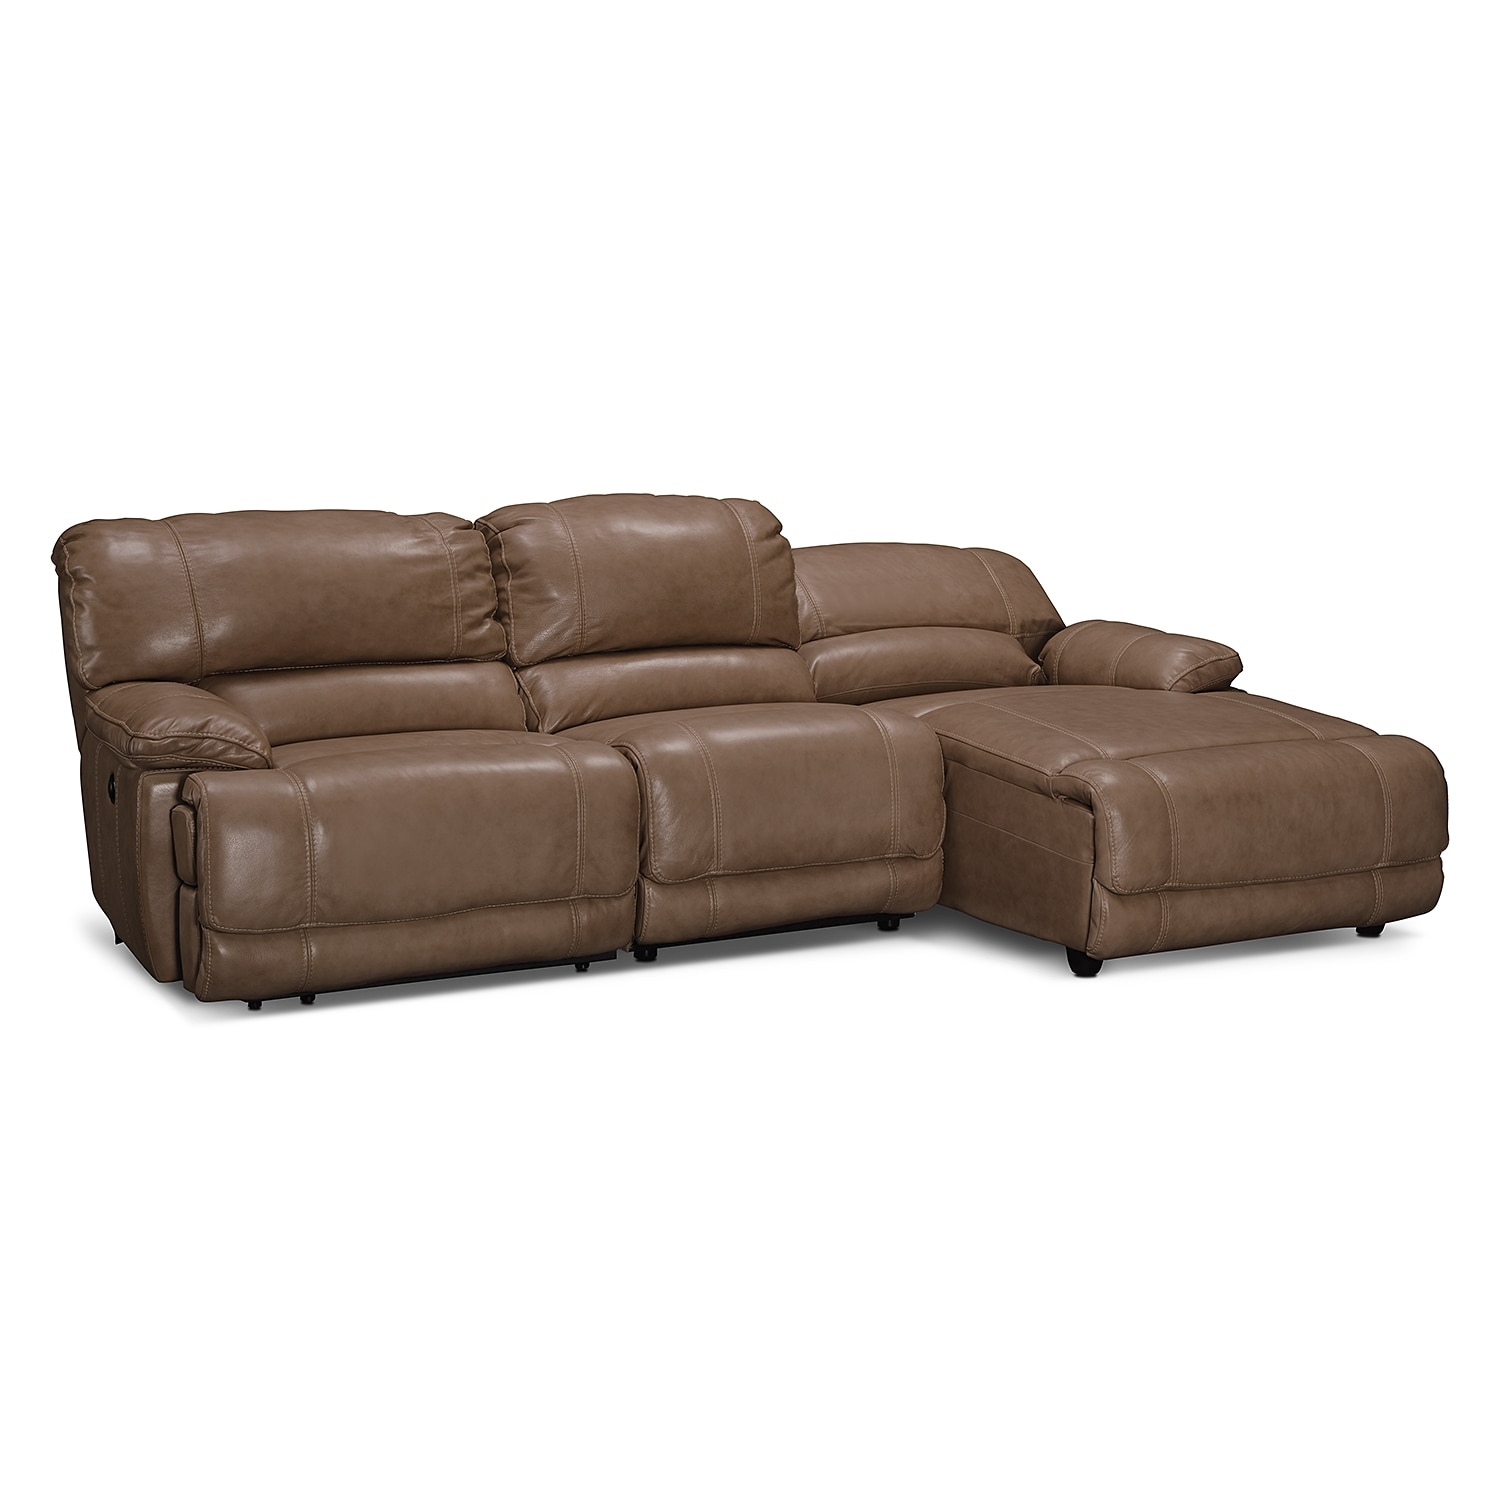 St malo 3 piece power reclining sectional with right for American signature furniture commercial chaise